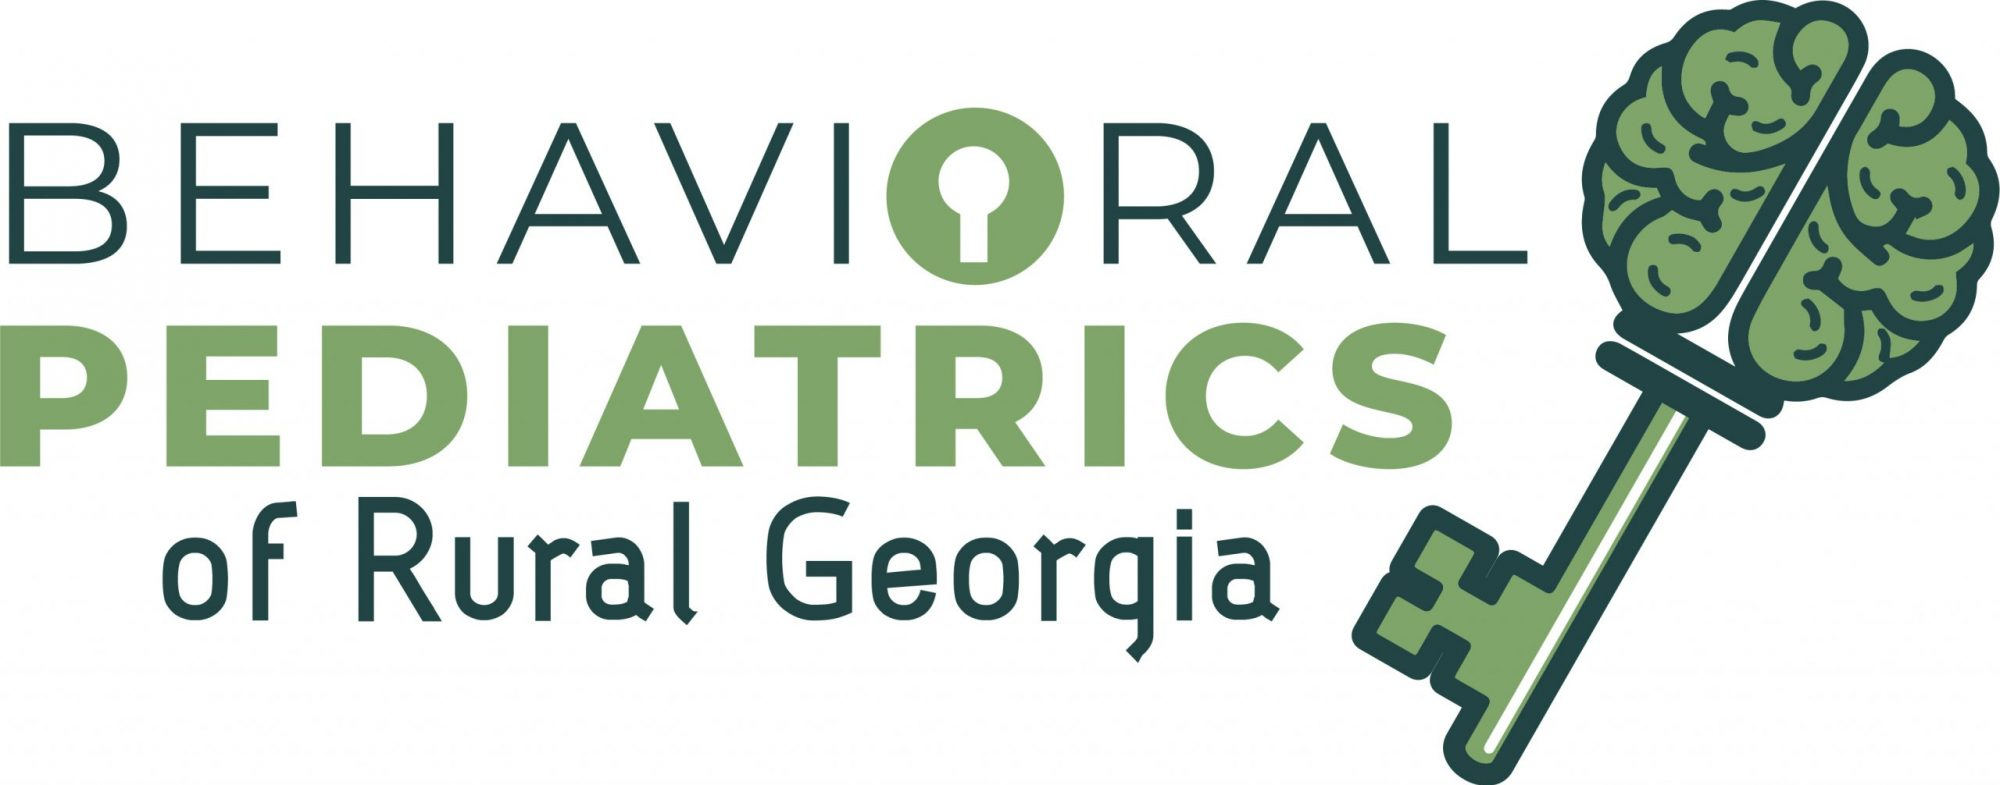 Behavioral Pediatrics of Rural Georgia